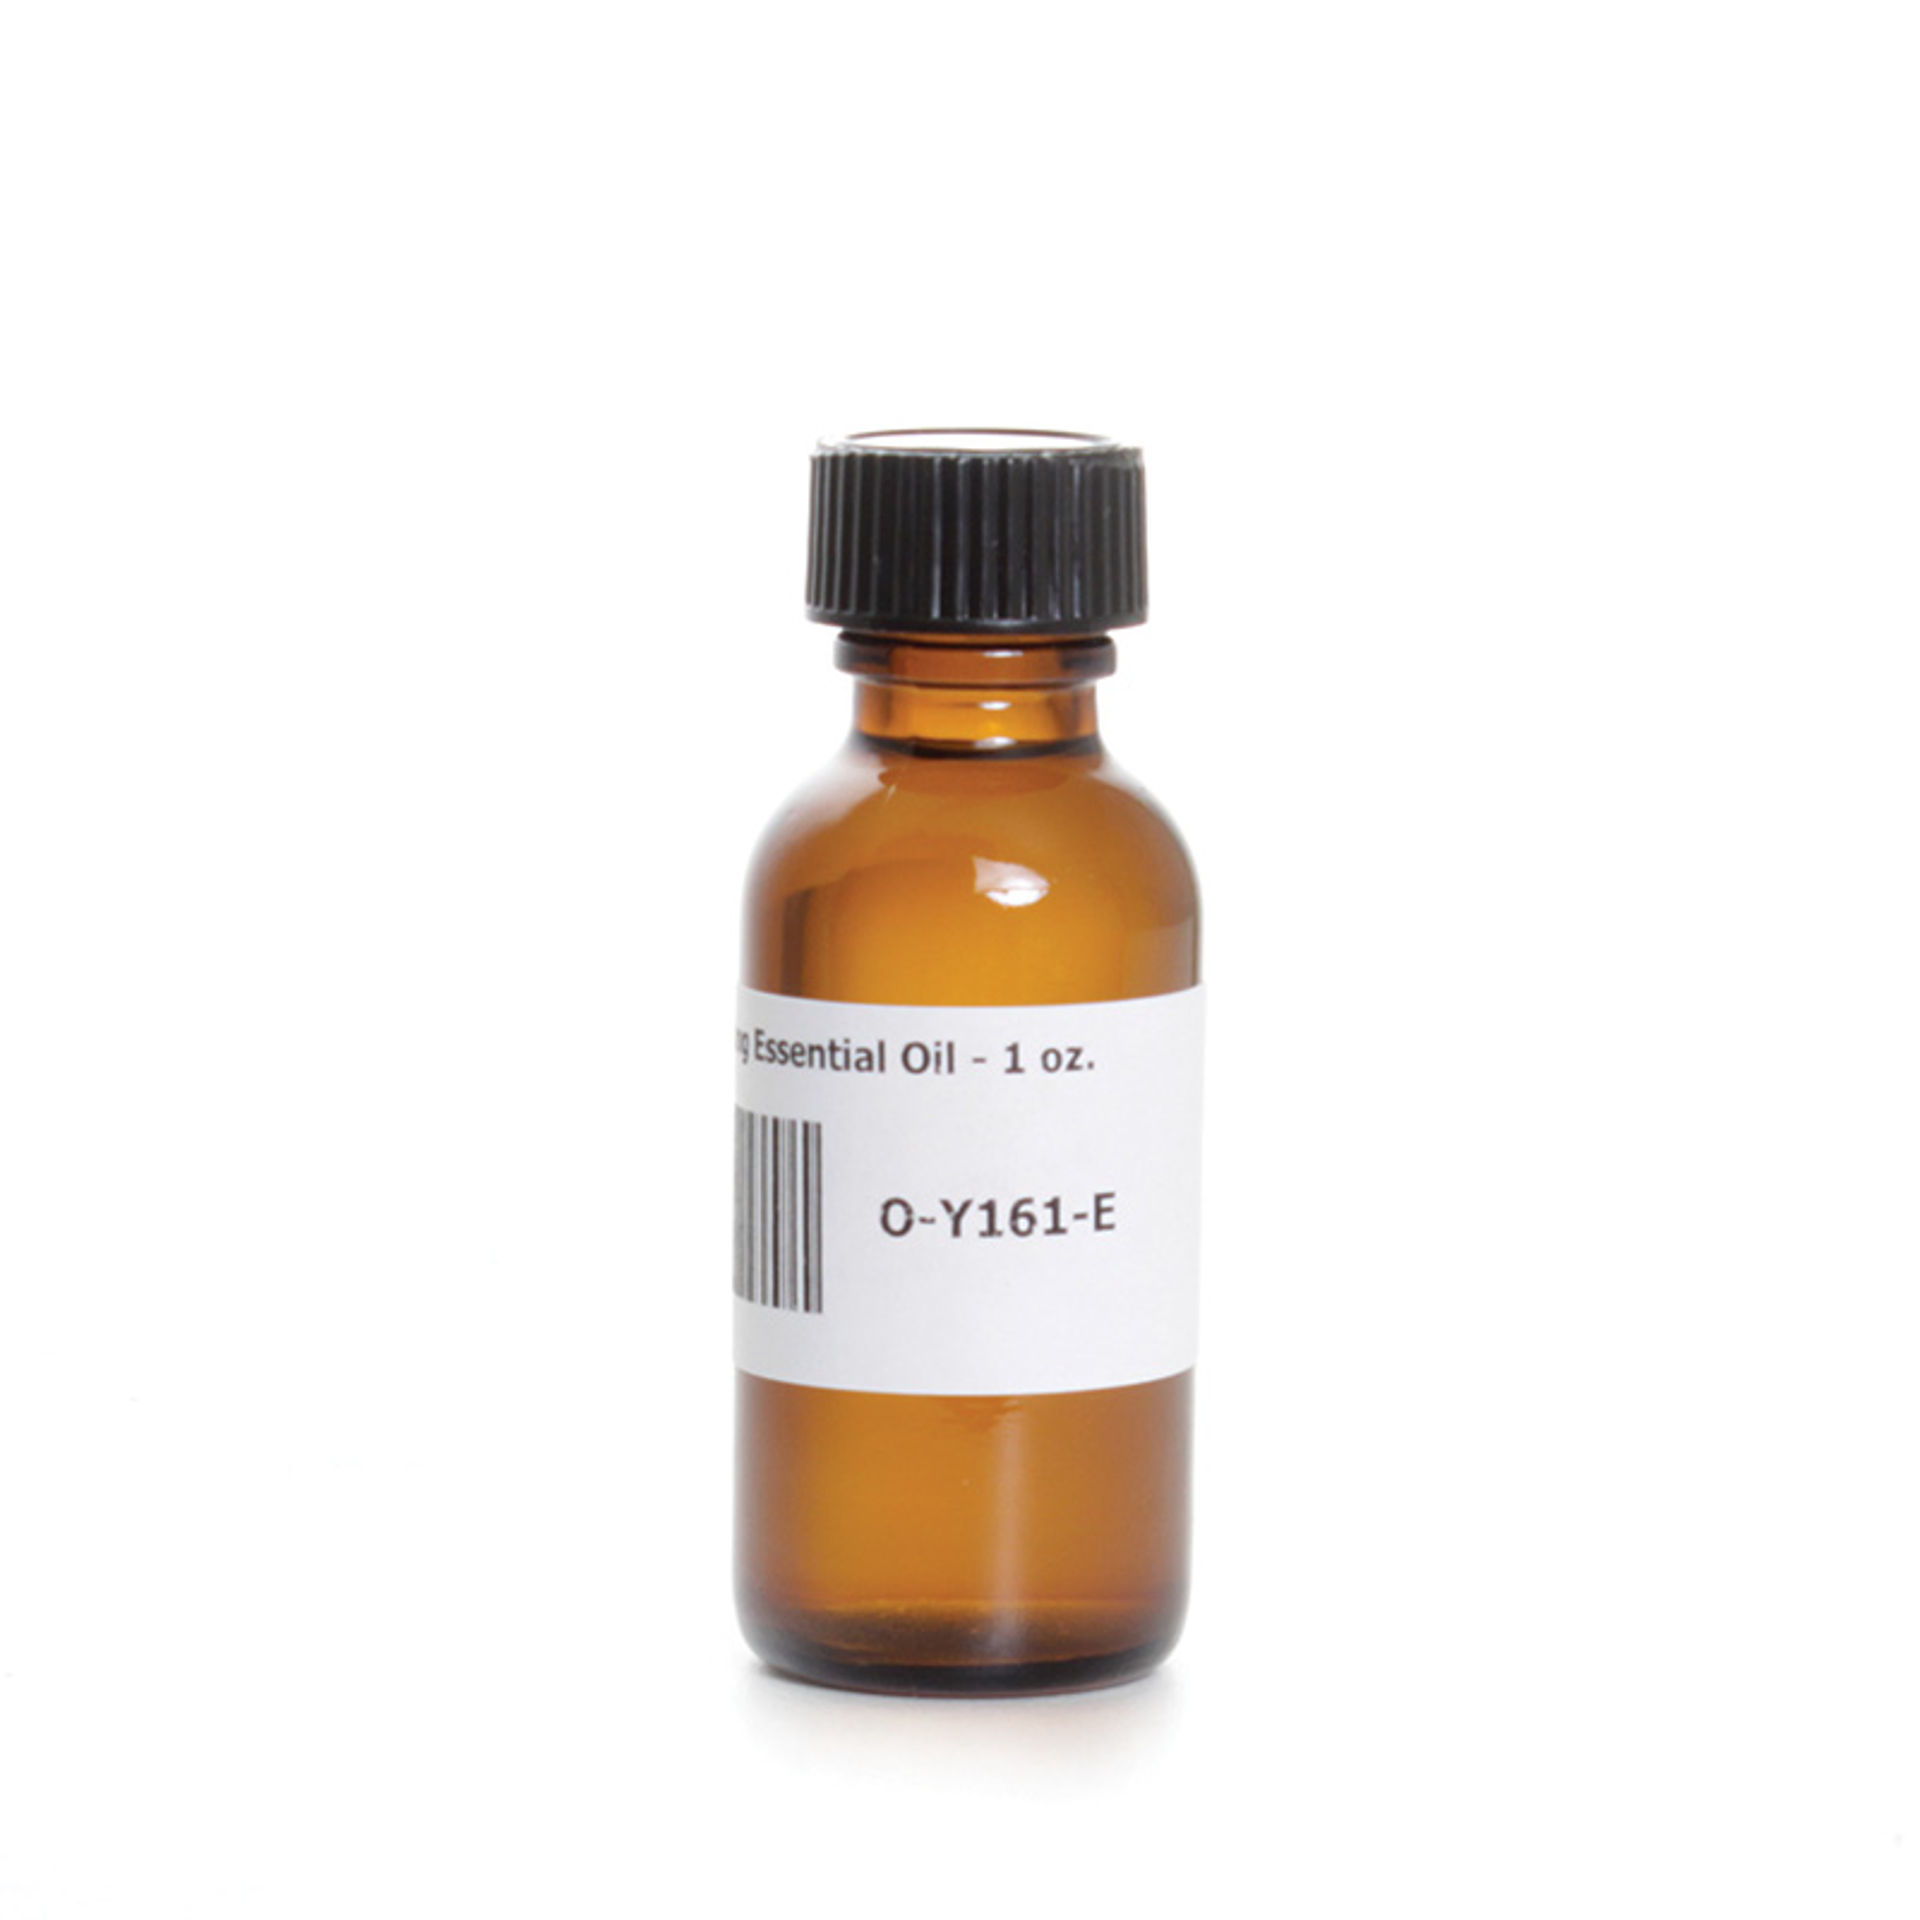 Picture of Ylang Ylang Essential Oil - 1 oz.